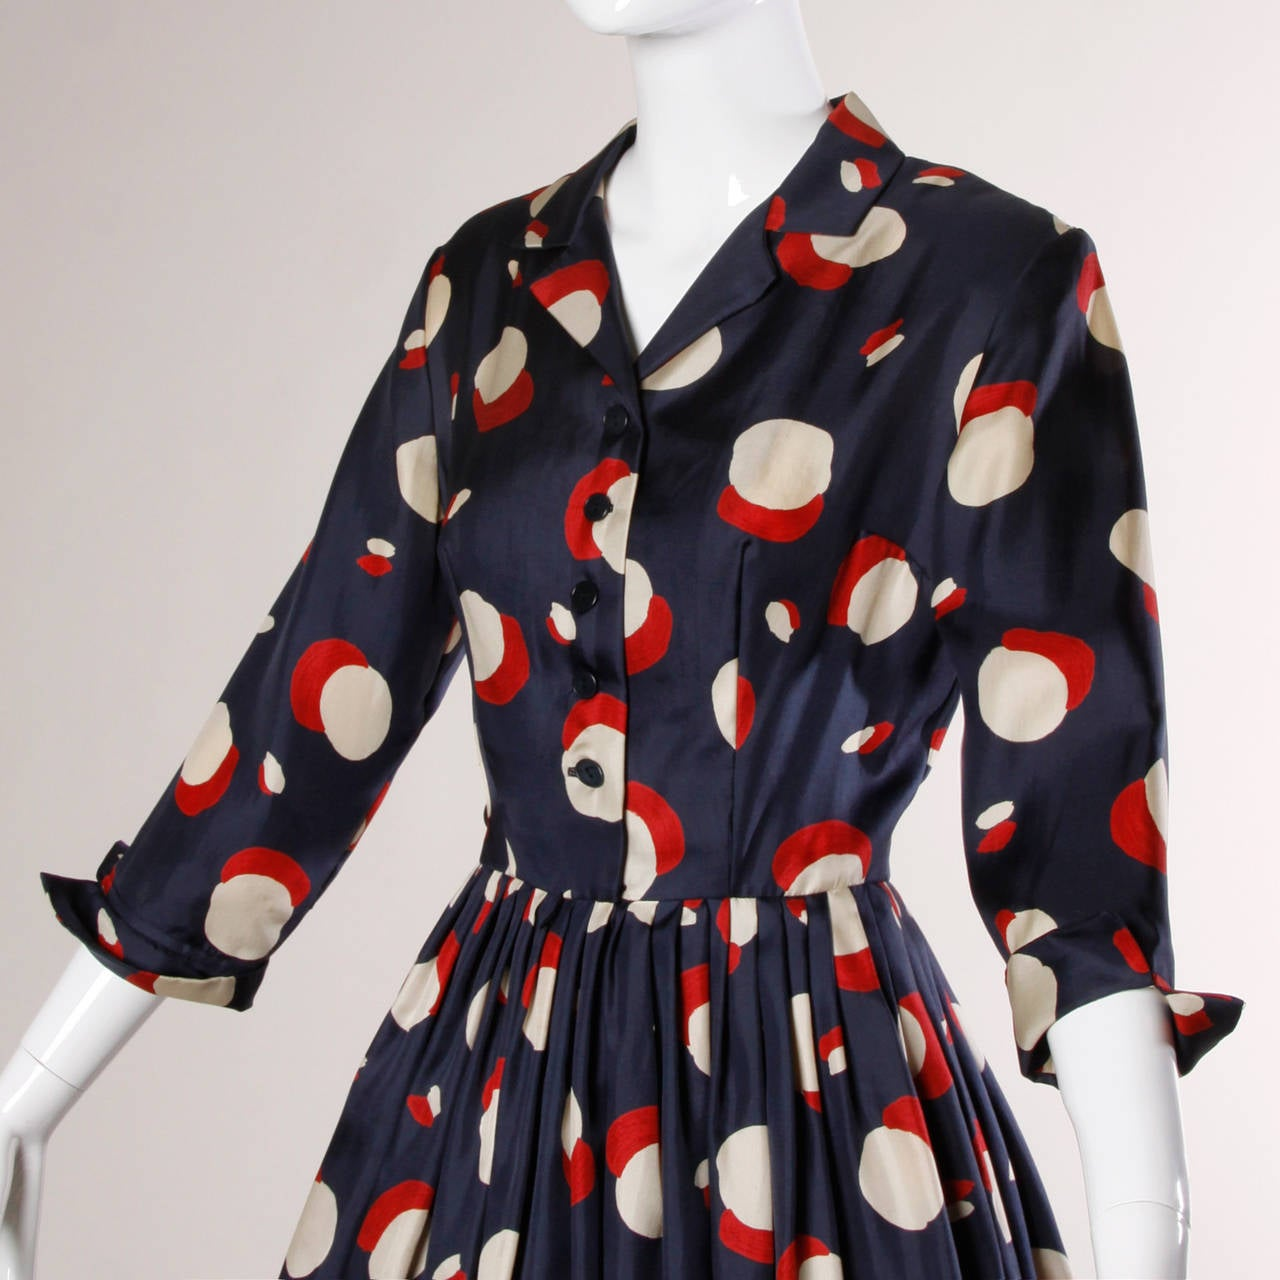 1950s New Look Vintage Polka Dot Print Silk Dress with a Full Sweep 5